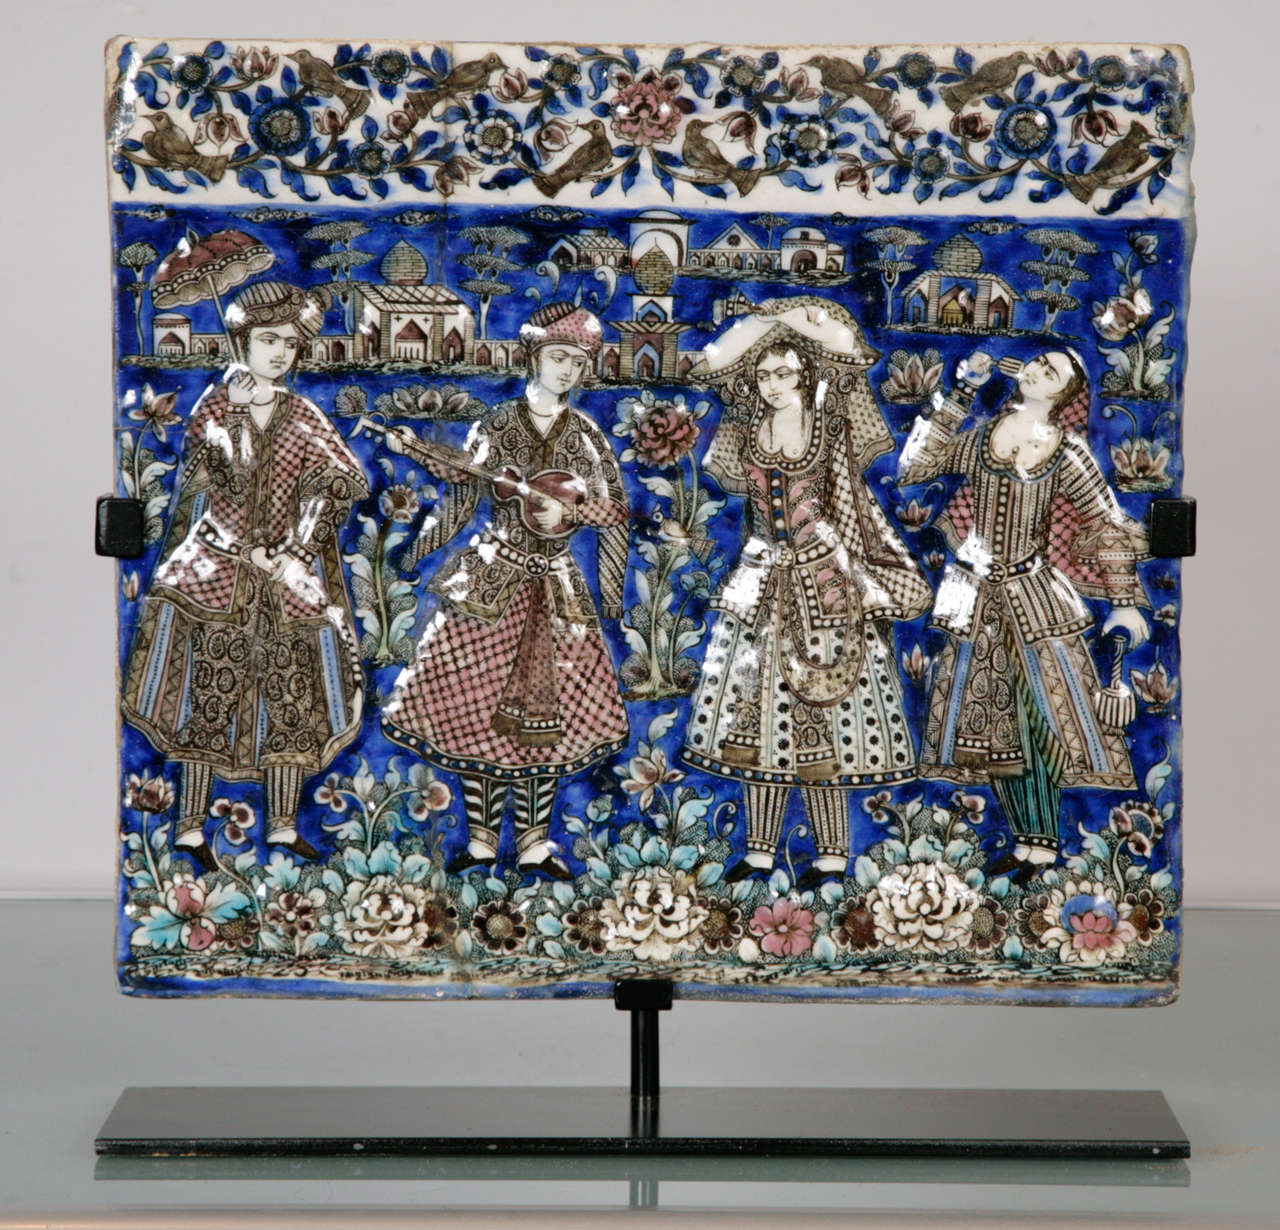 A polychrome tile moulded in relief, the scene depicting musicians and dancers. The figures depicted are dressed in Qajar court costume; the far left figure seen holding a parasol. The musicians are standing in front of a landscape with various